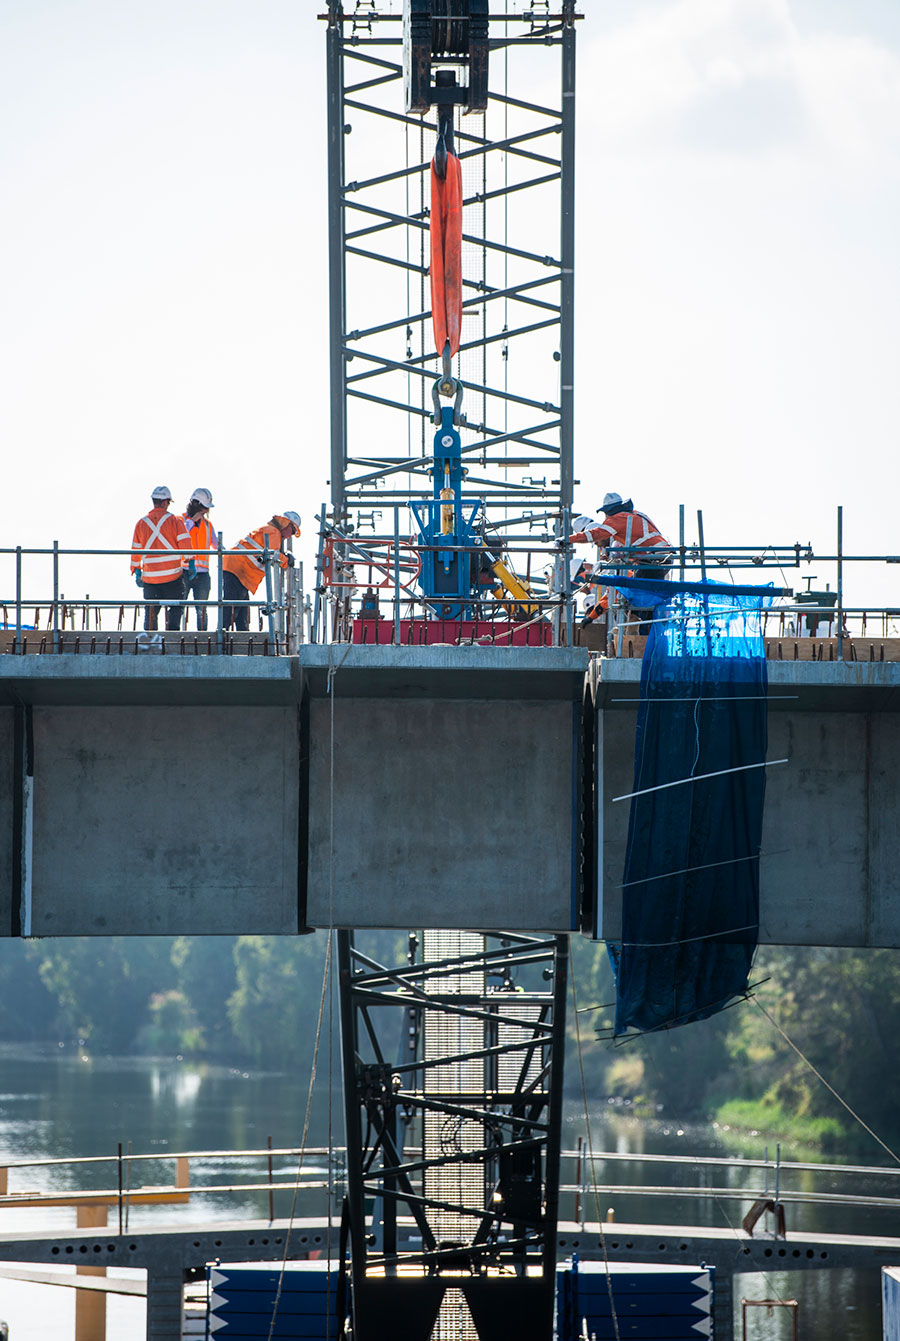 New Grafton Bridge project, installation of final segment for span three (March 2019)